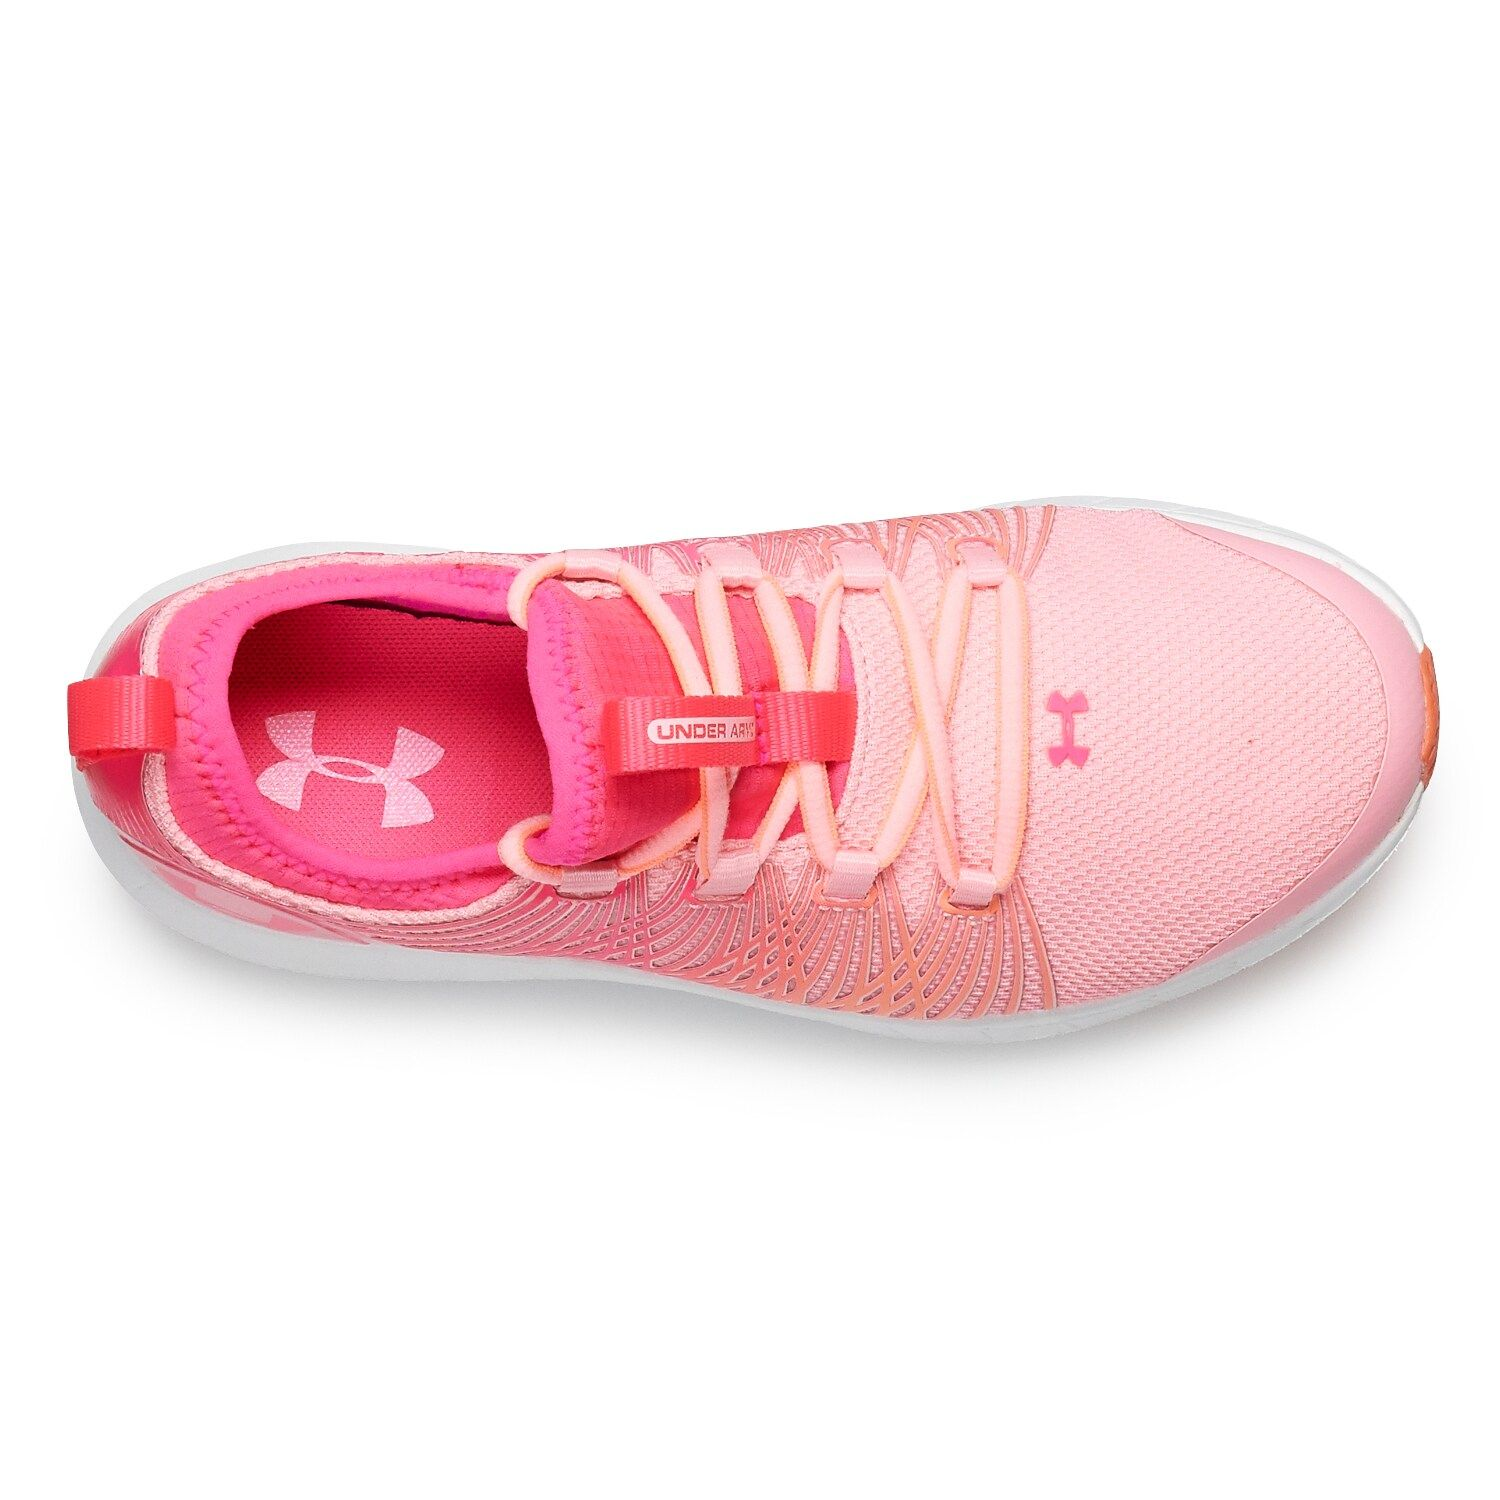 Girls sneakers, Under armour shoes